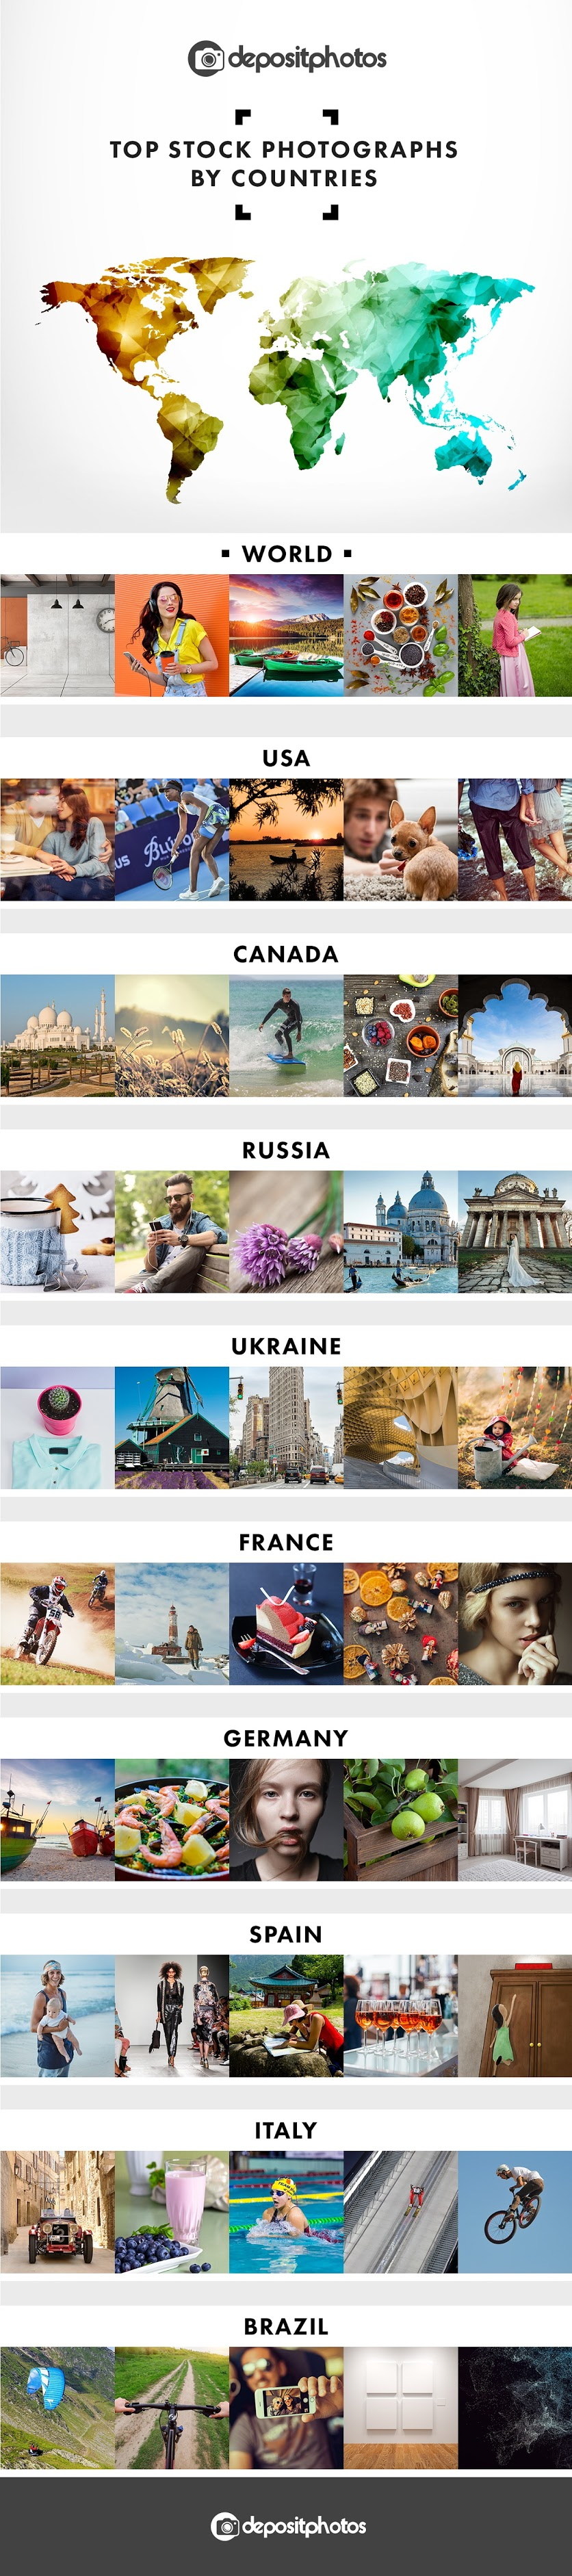 Top Stock Photographs By Countries - infographic